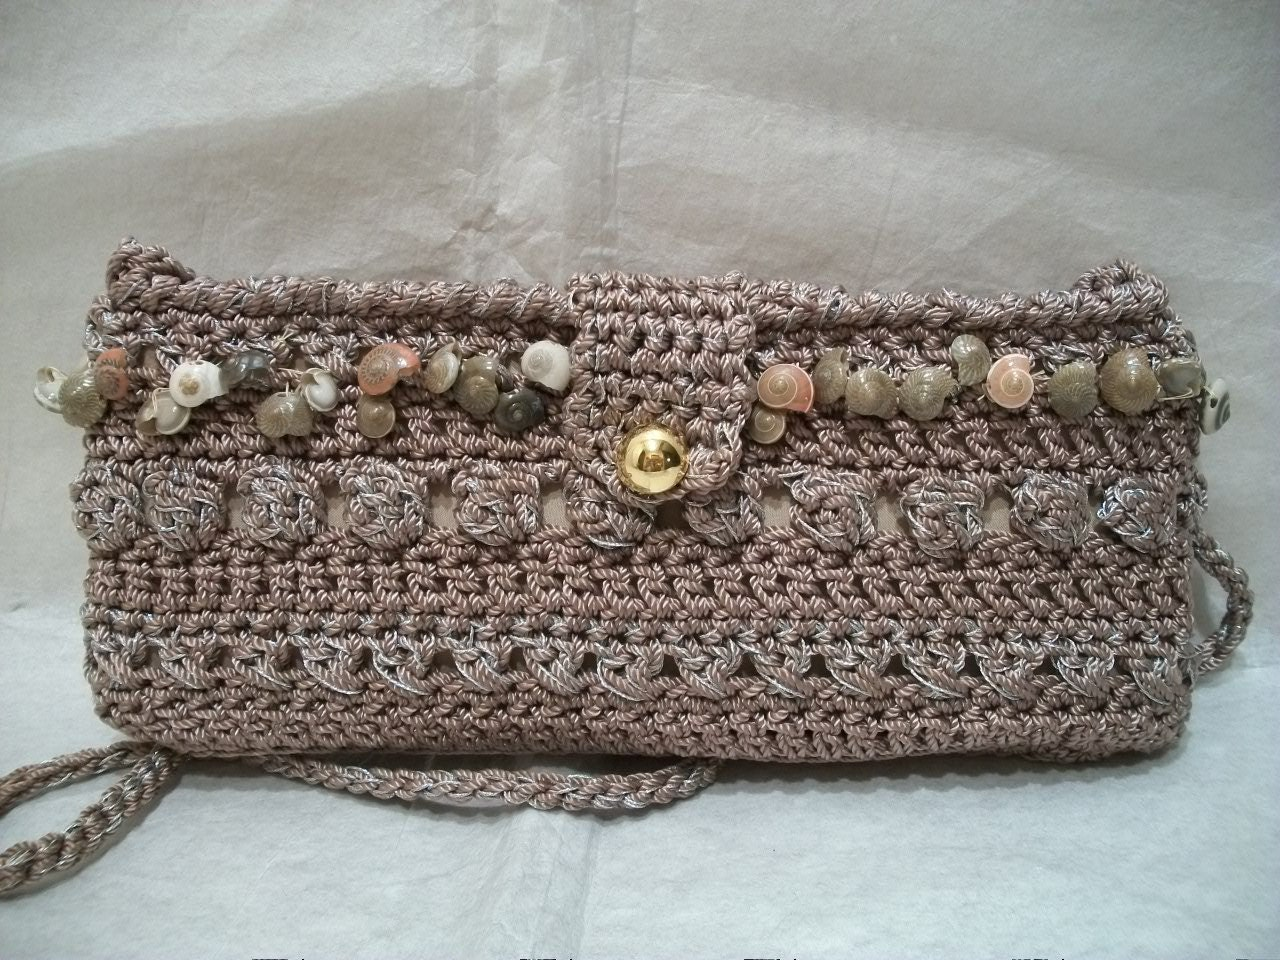 Crochet Small Bag : Unavailable Listing on Etsy